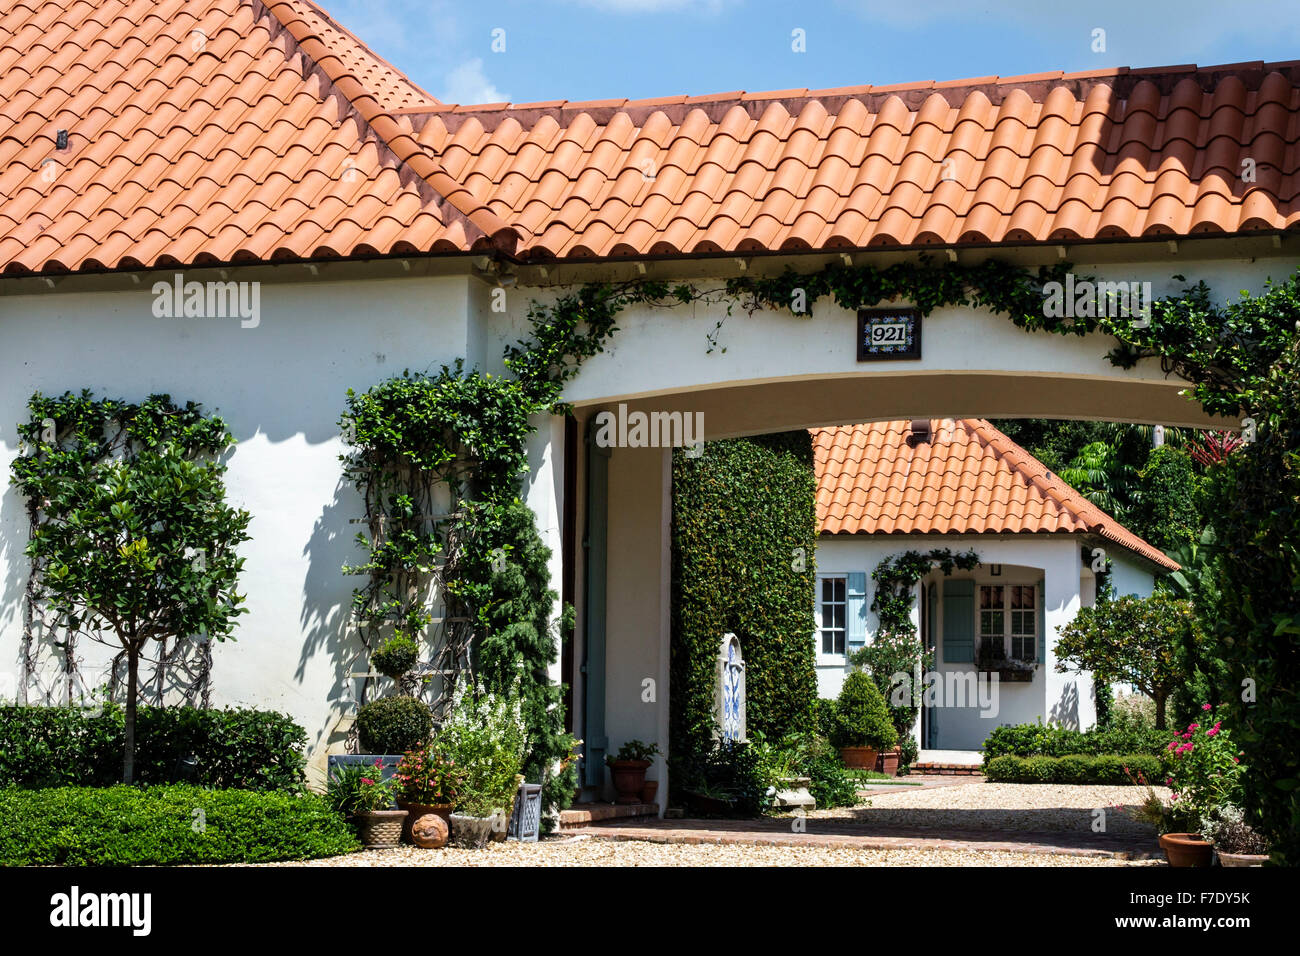 Stock Photo   Vero Beach Florida North Hutchinson Orchid Island Ladybug Lane  House Home Barrel Tile Roofing